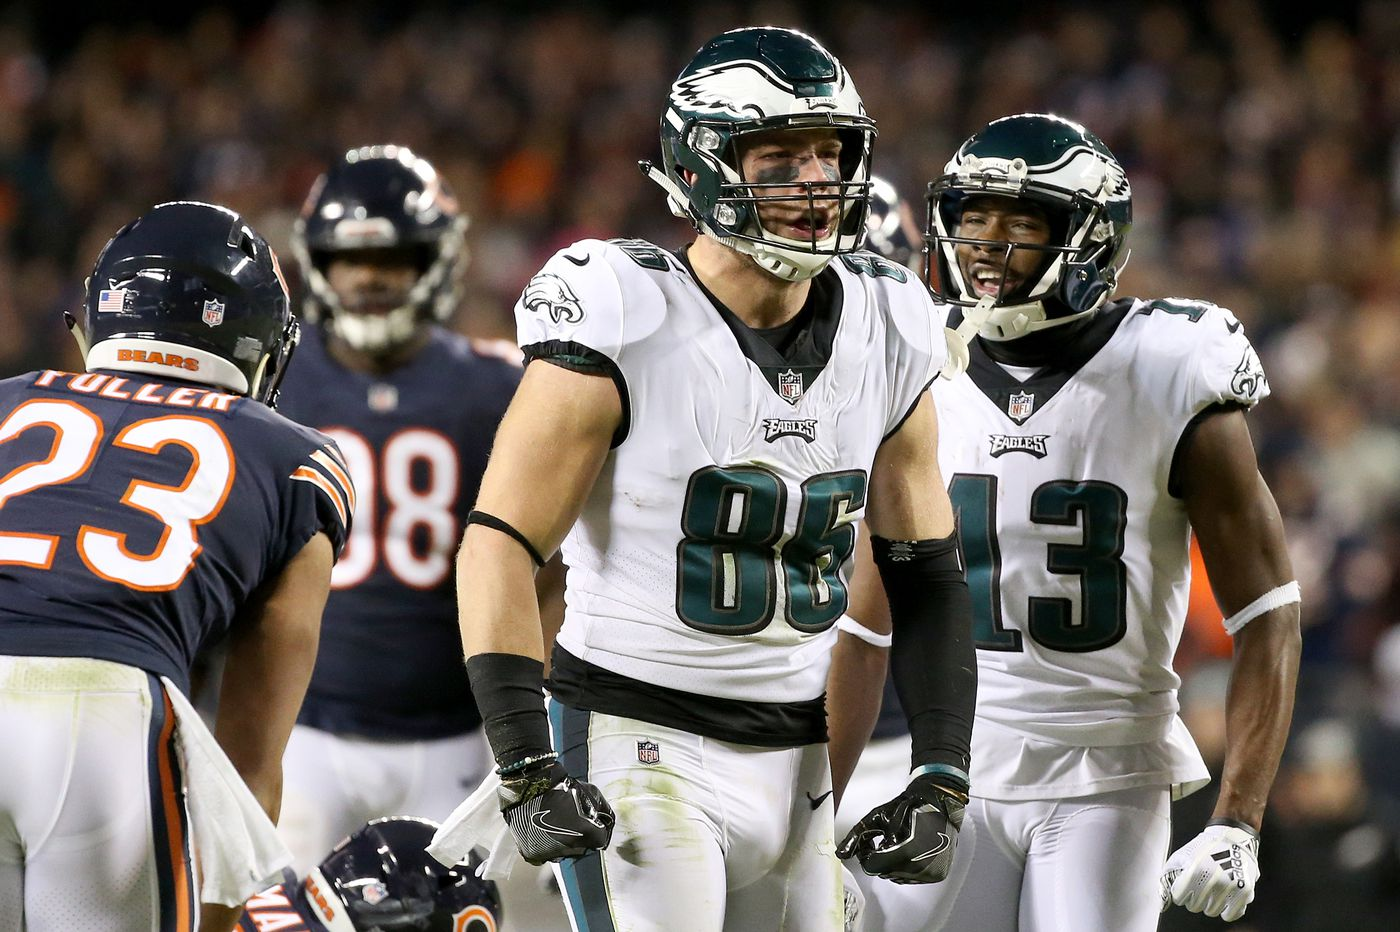 302f82ad173 The Eagles are embracing their underdog status again, and that makes them  dangerous | Mike Sielski